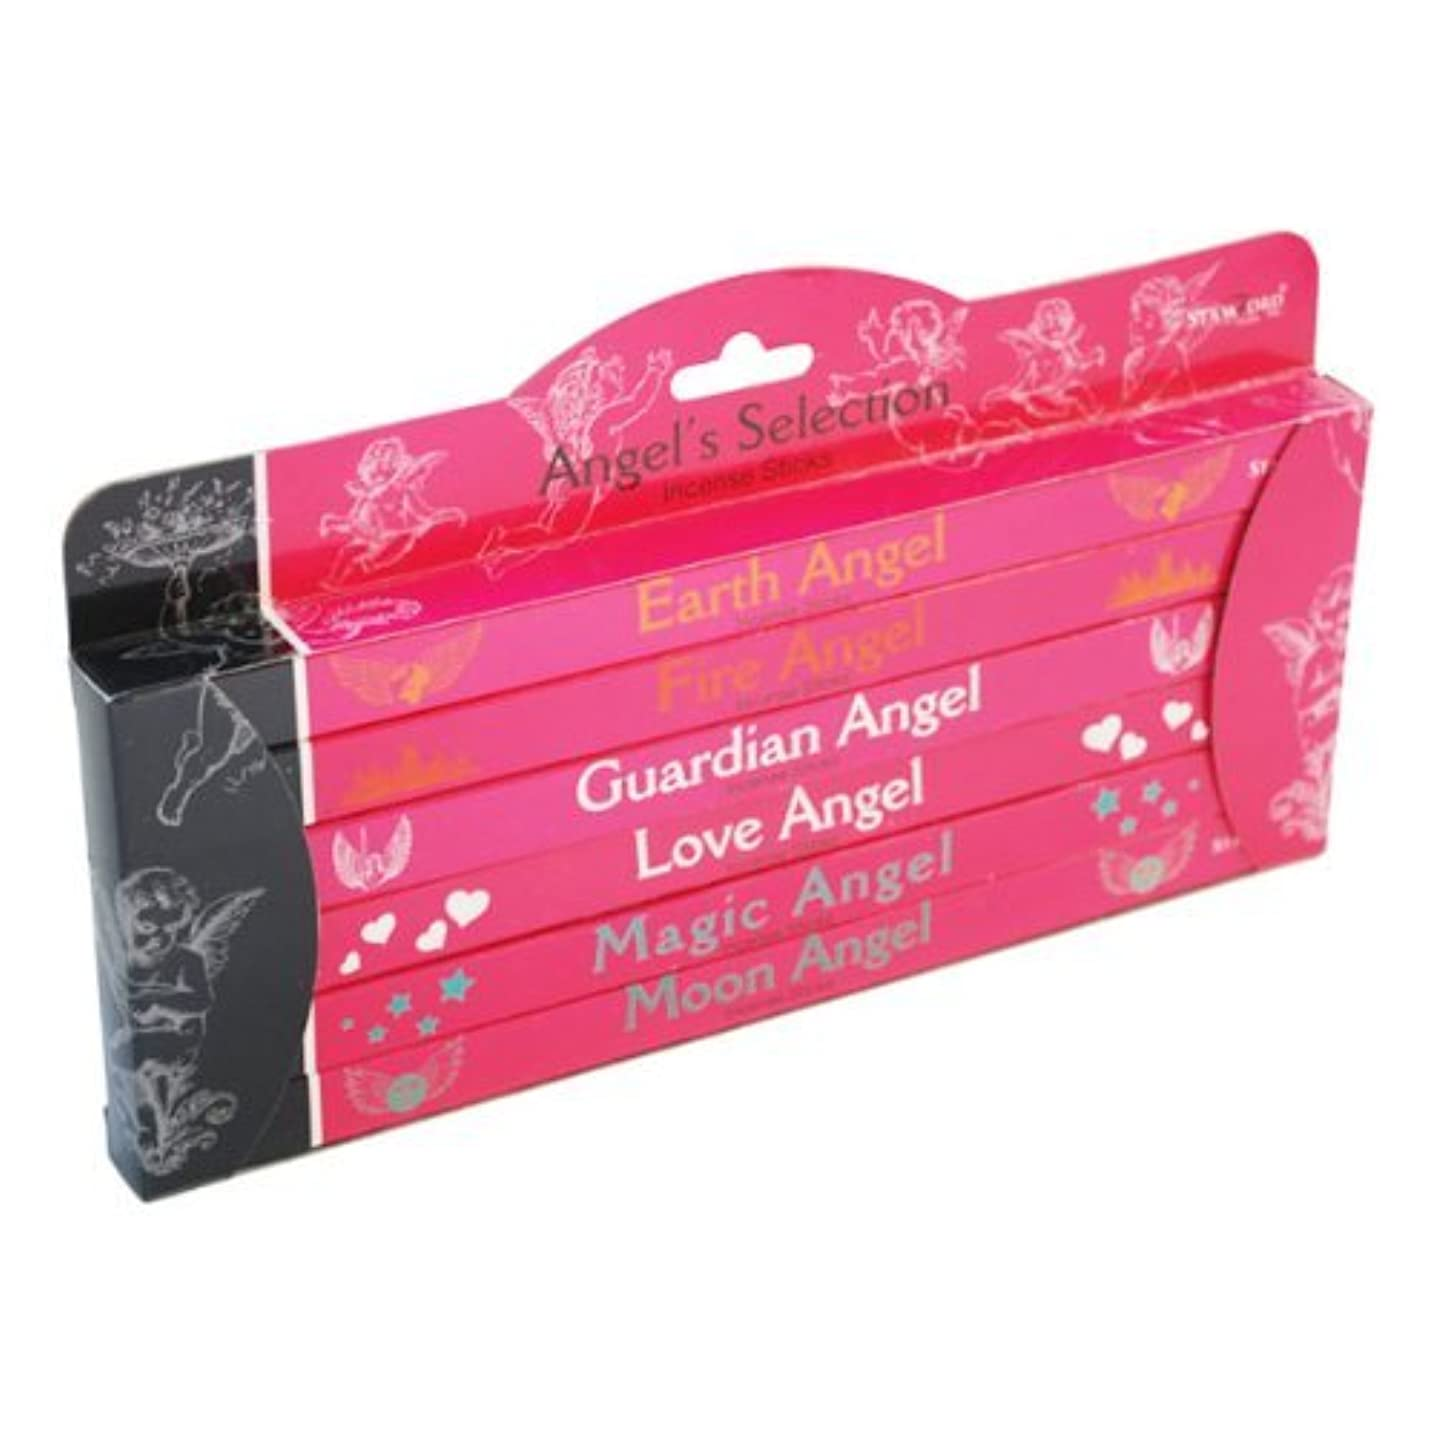 Stamford Angel Incense Gift Pack by Stamford